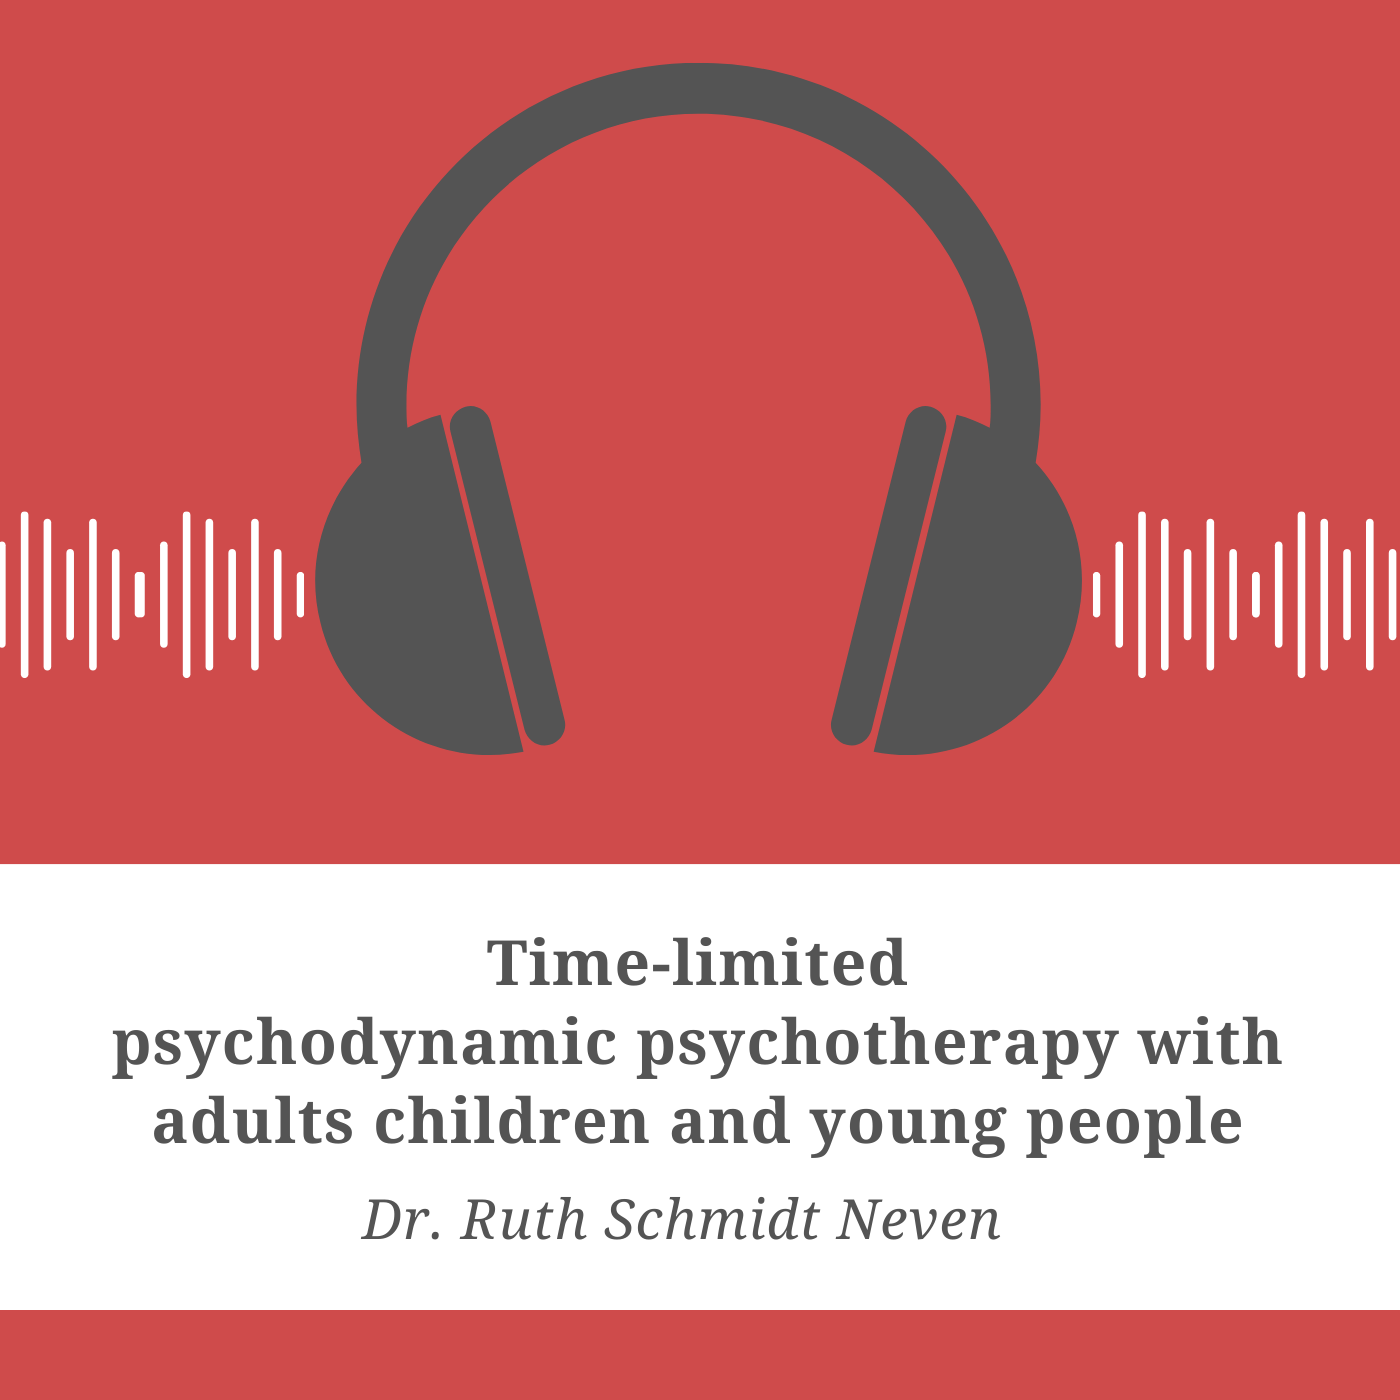 Time-limited psychodynamic psychotherapy with adults, children, and young people